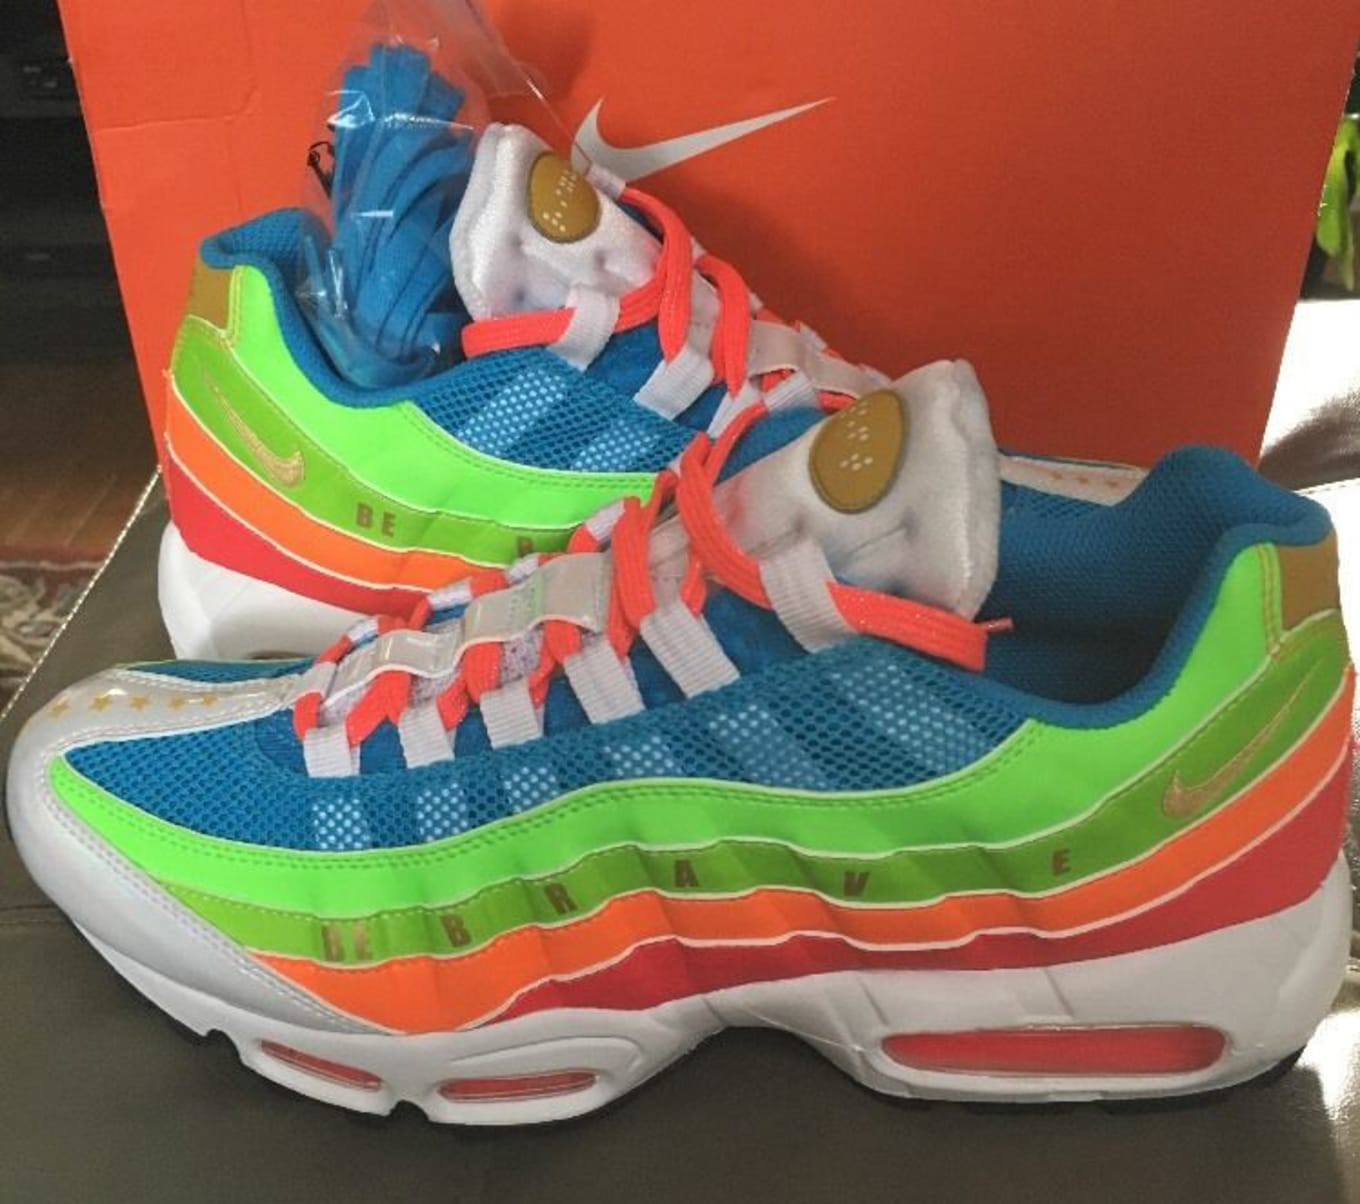 low priced 43d77 f3761 Doernbecher Nike Air Max 95 Sample   Sole Collector